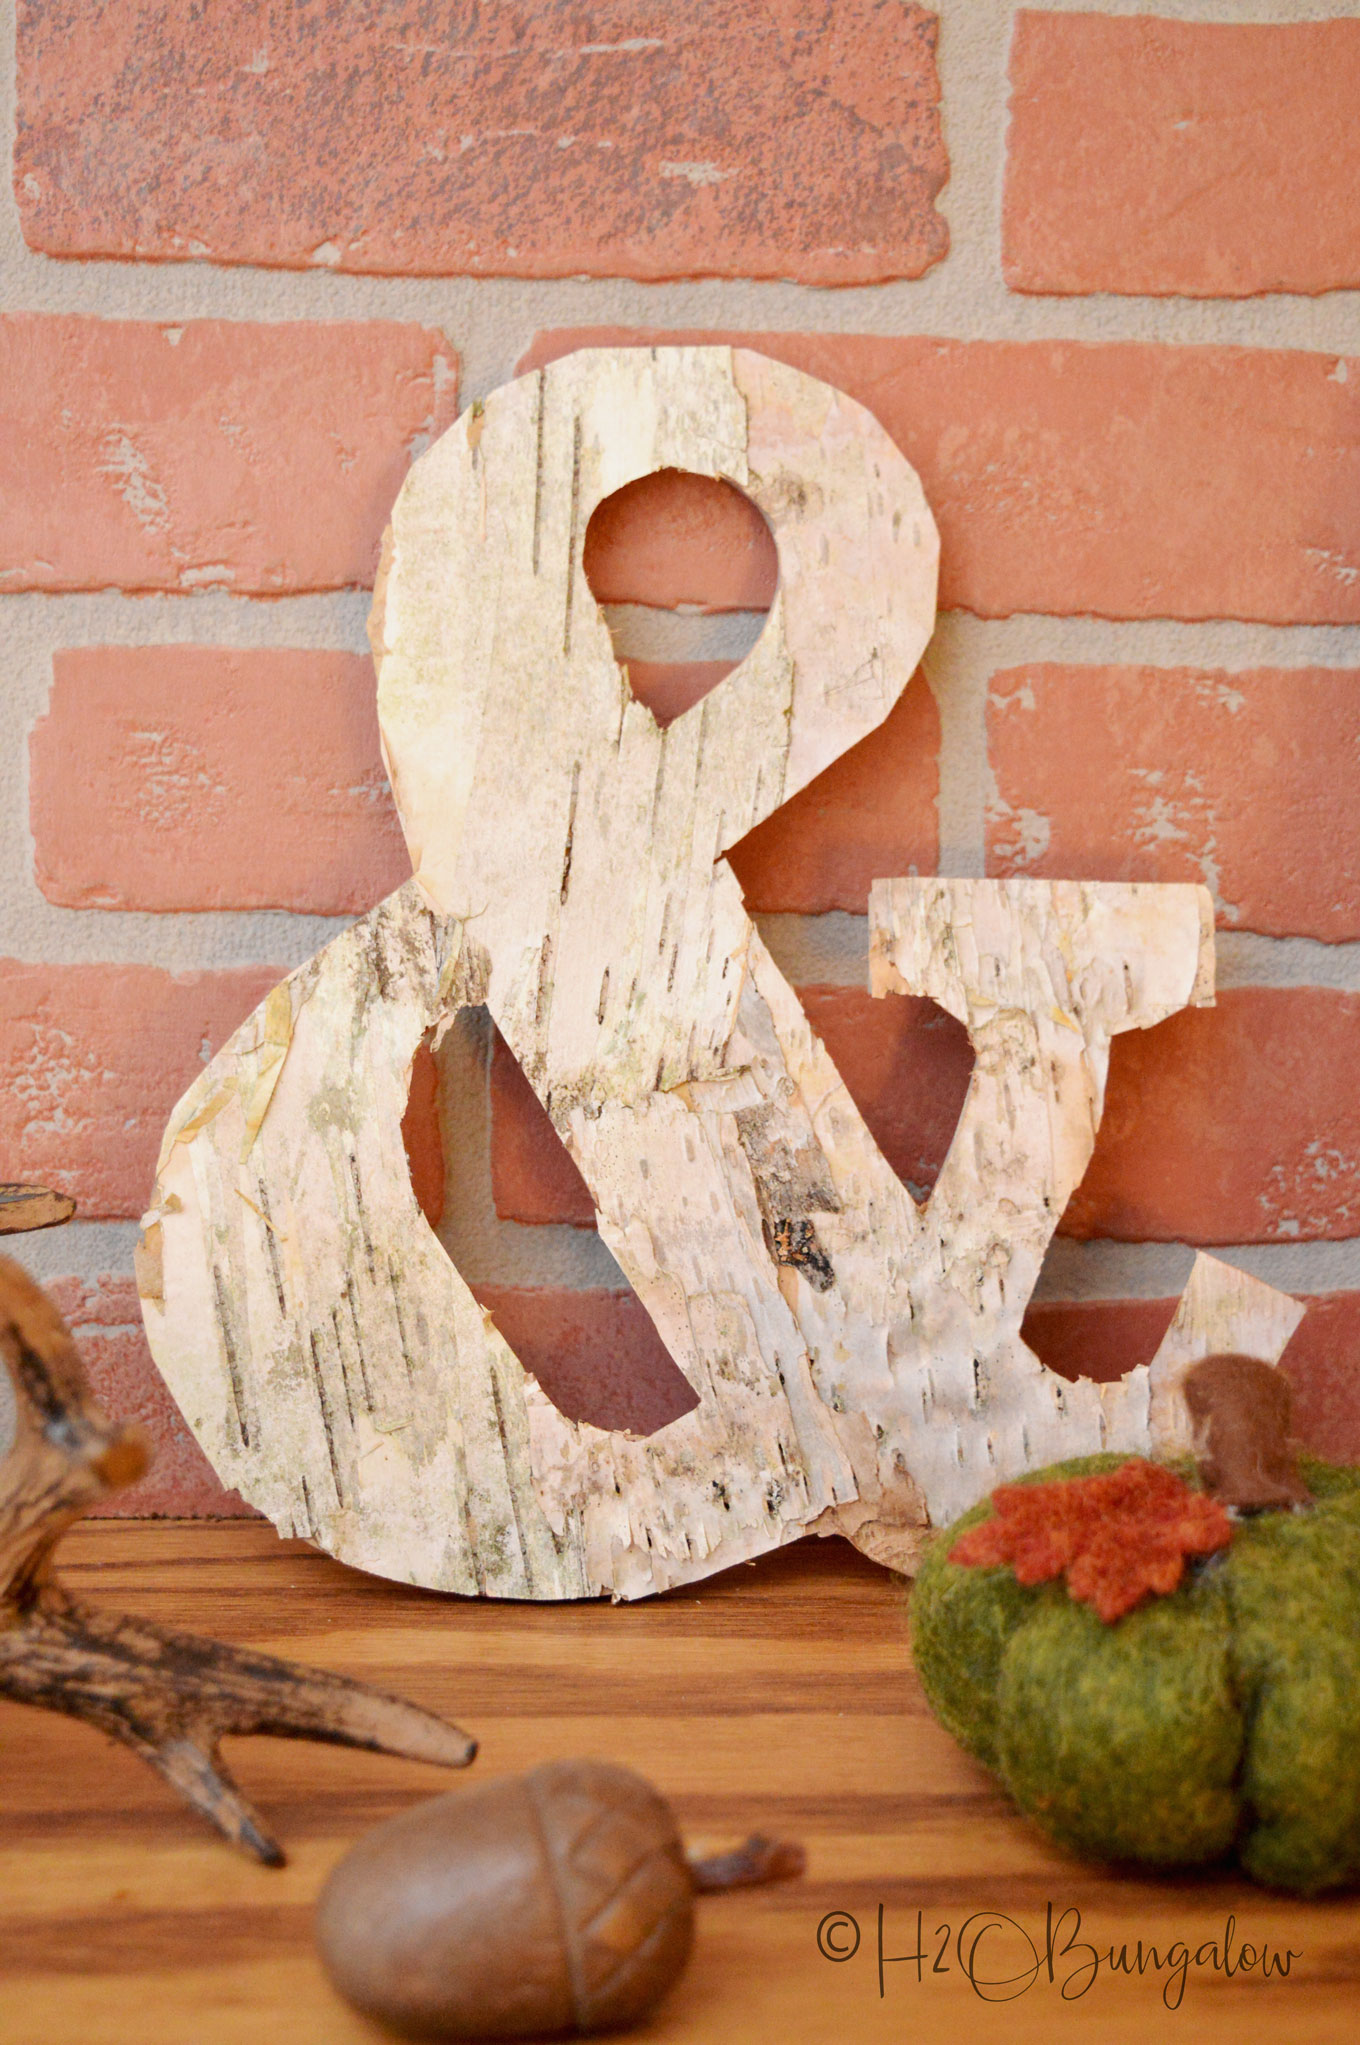 Bark craft idea to make a DIY birch bark picture frame. Easy tutorial to follow works on any flat photo frame or large letter. Birch bark craft gift idea.